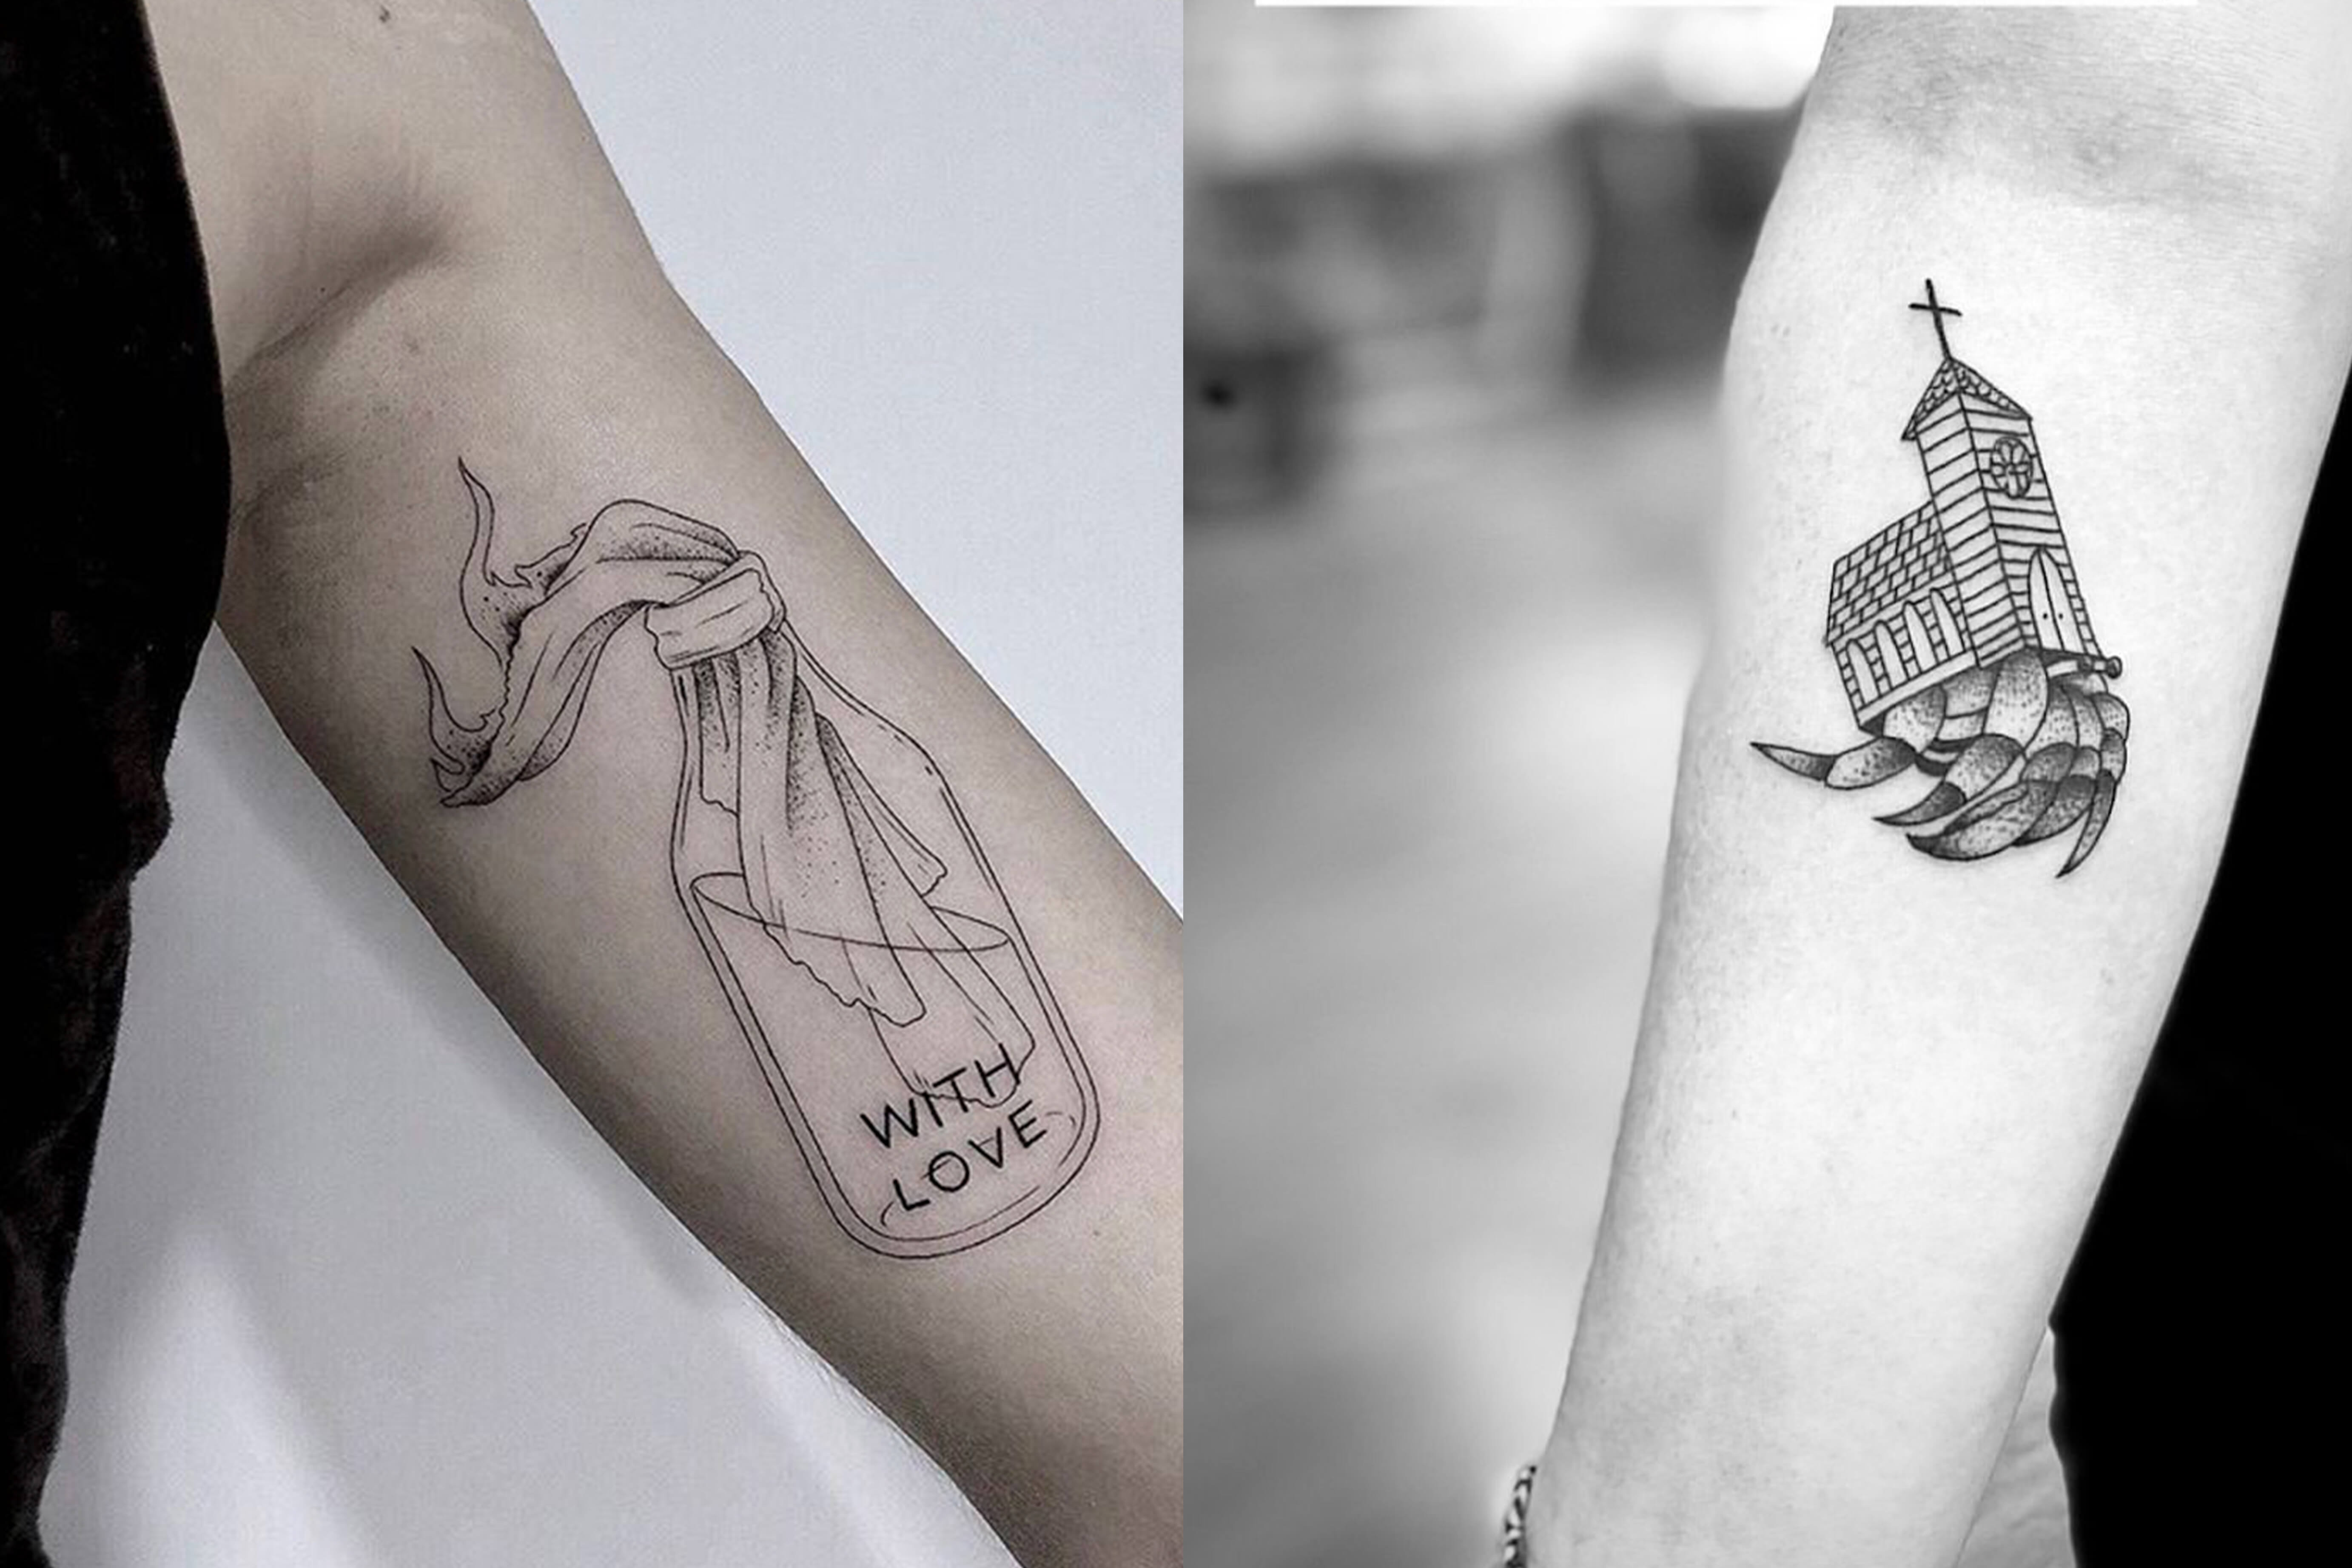 Two images of tattoos inspired by Scott Erickson Art.